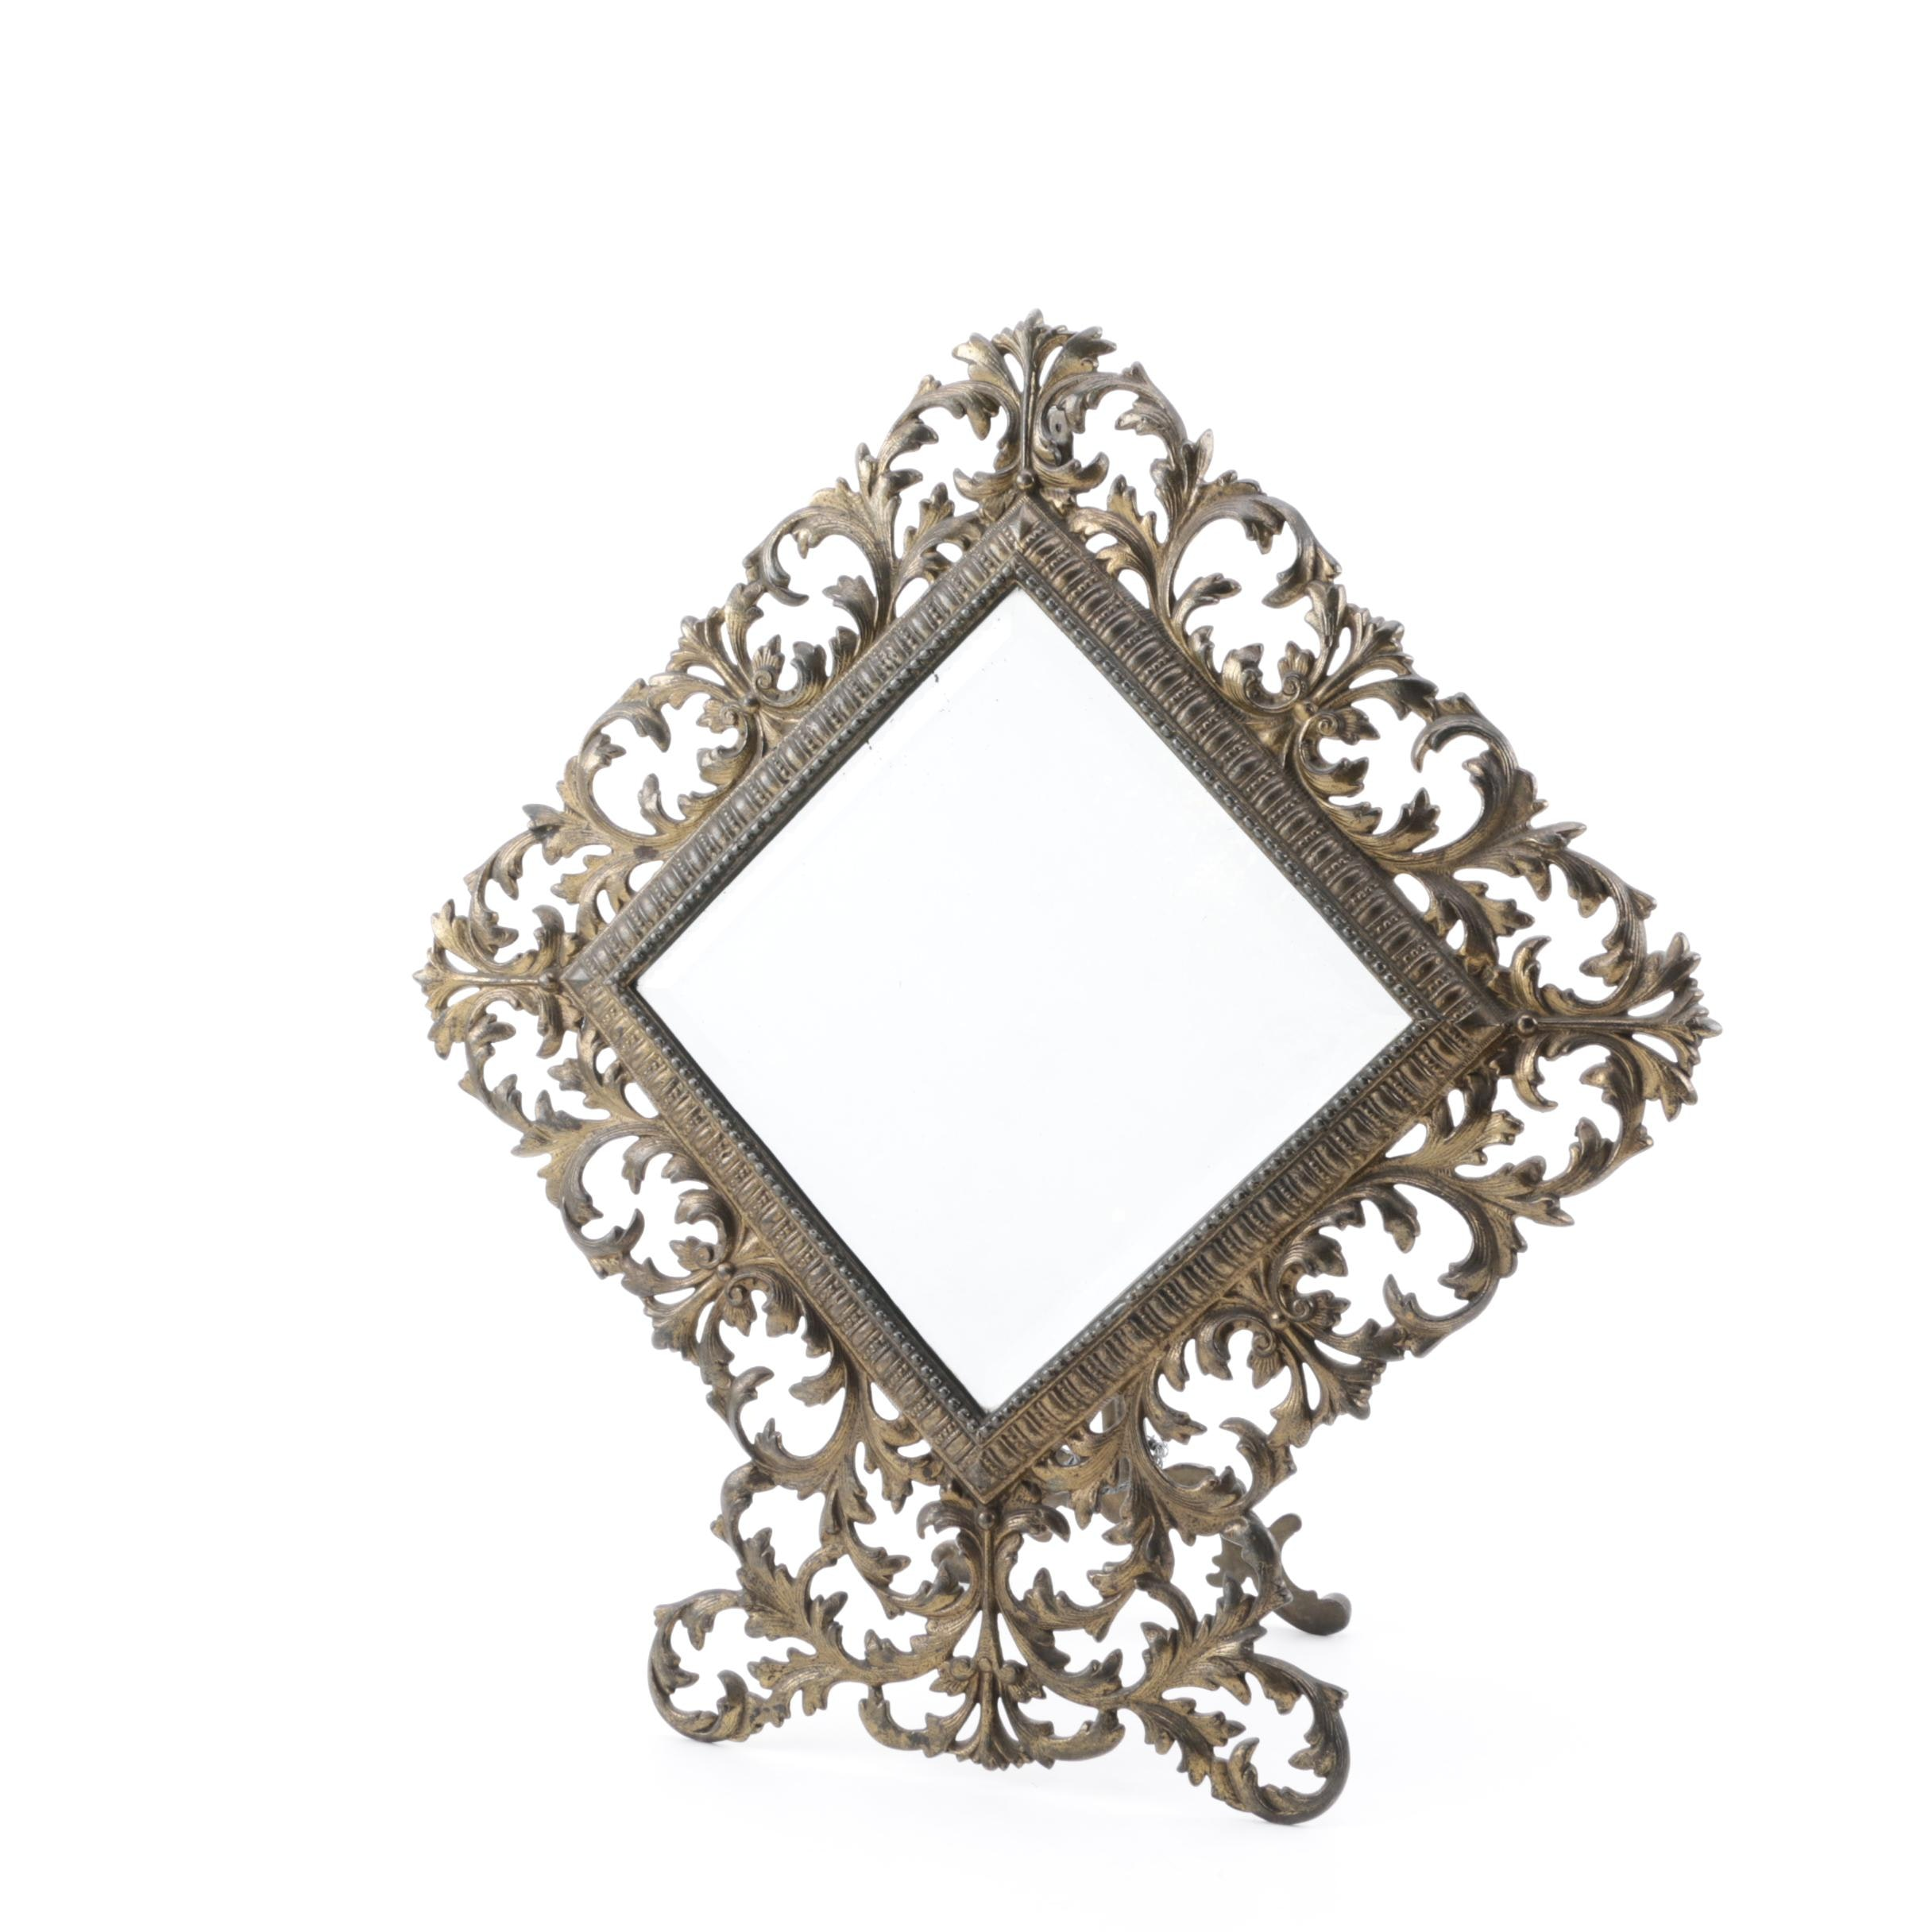 Vintage Metal Filigree Table Mirror